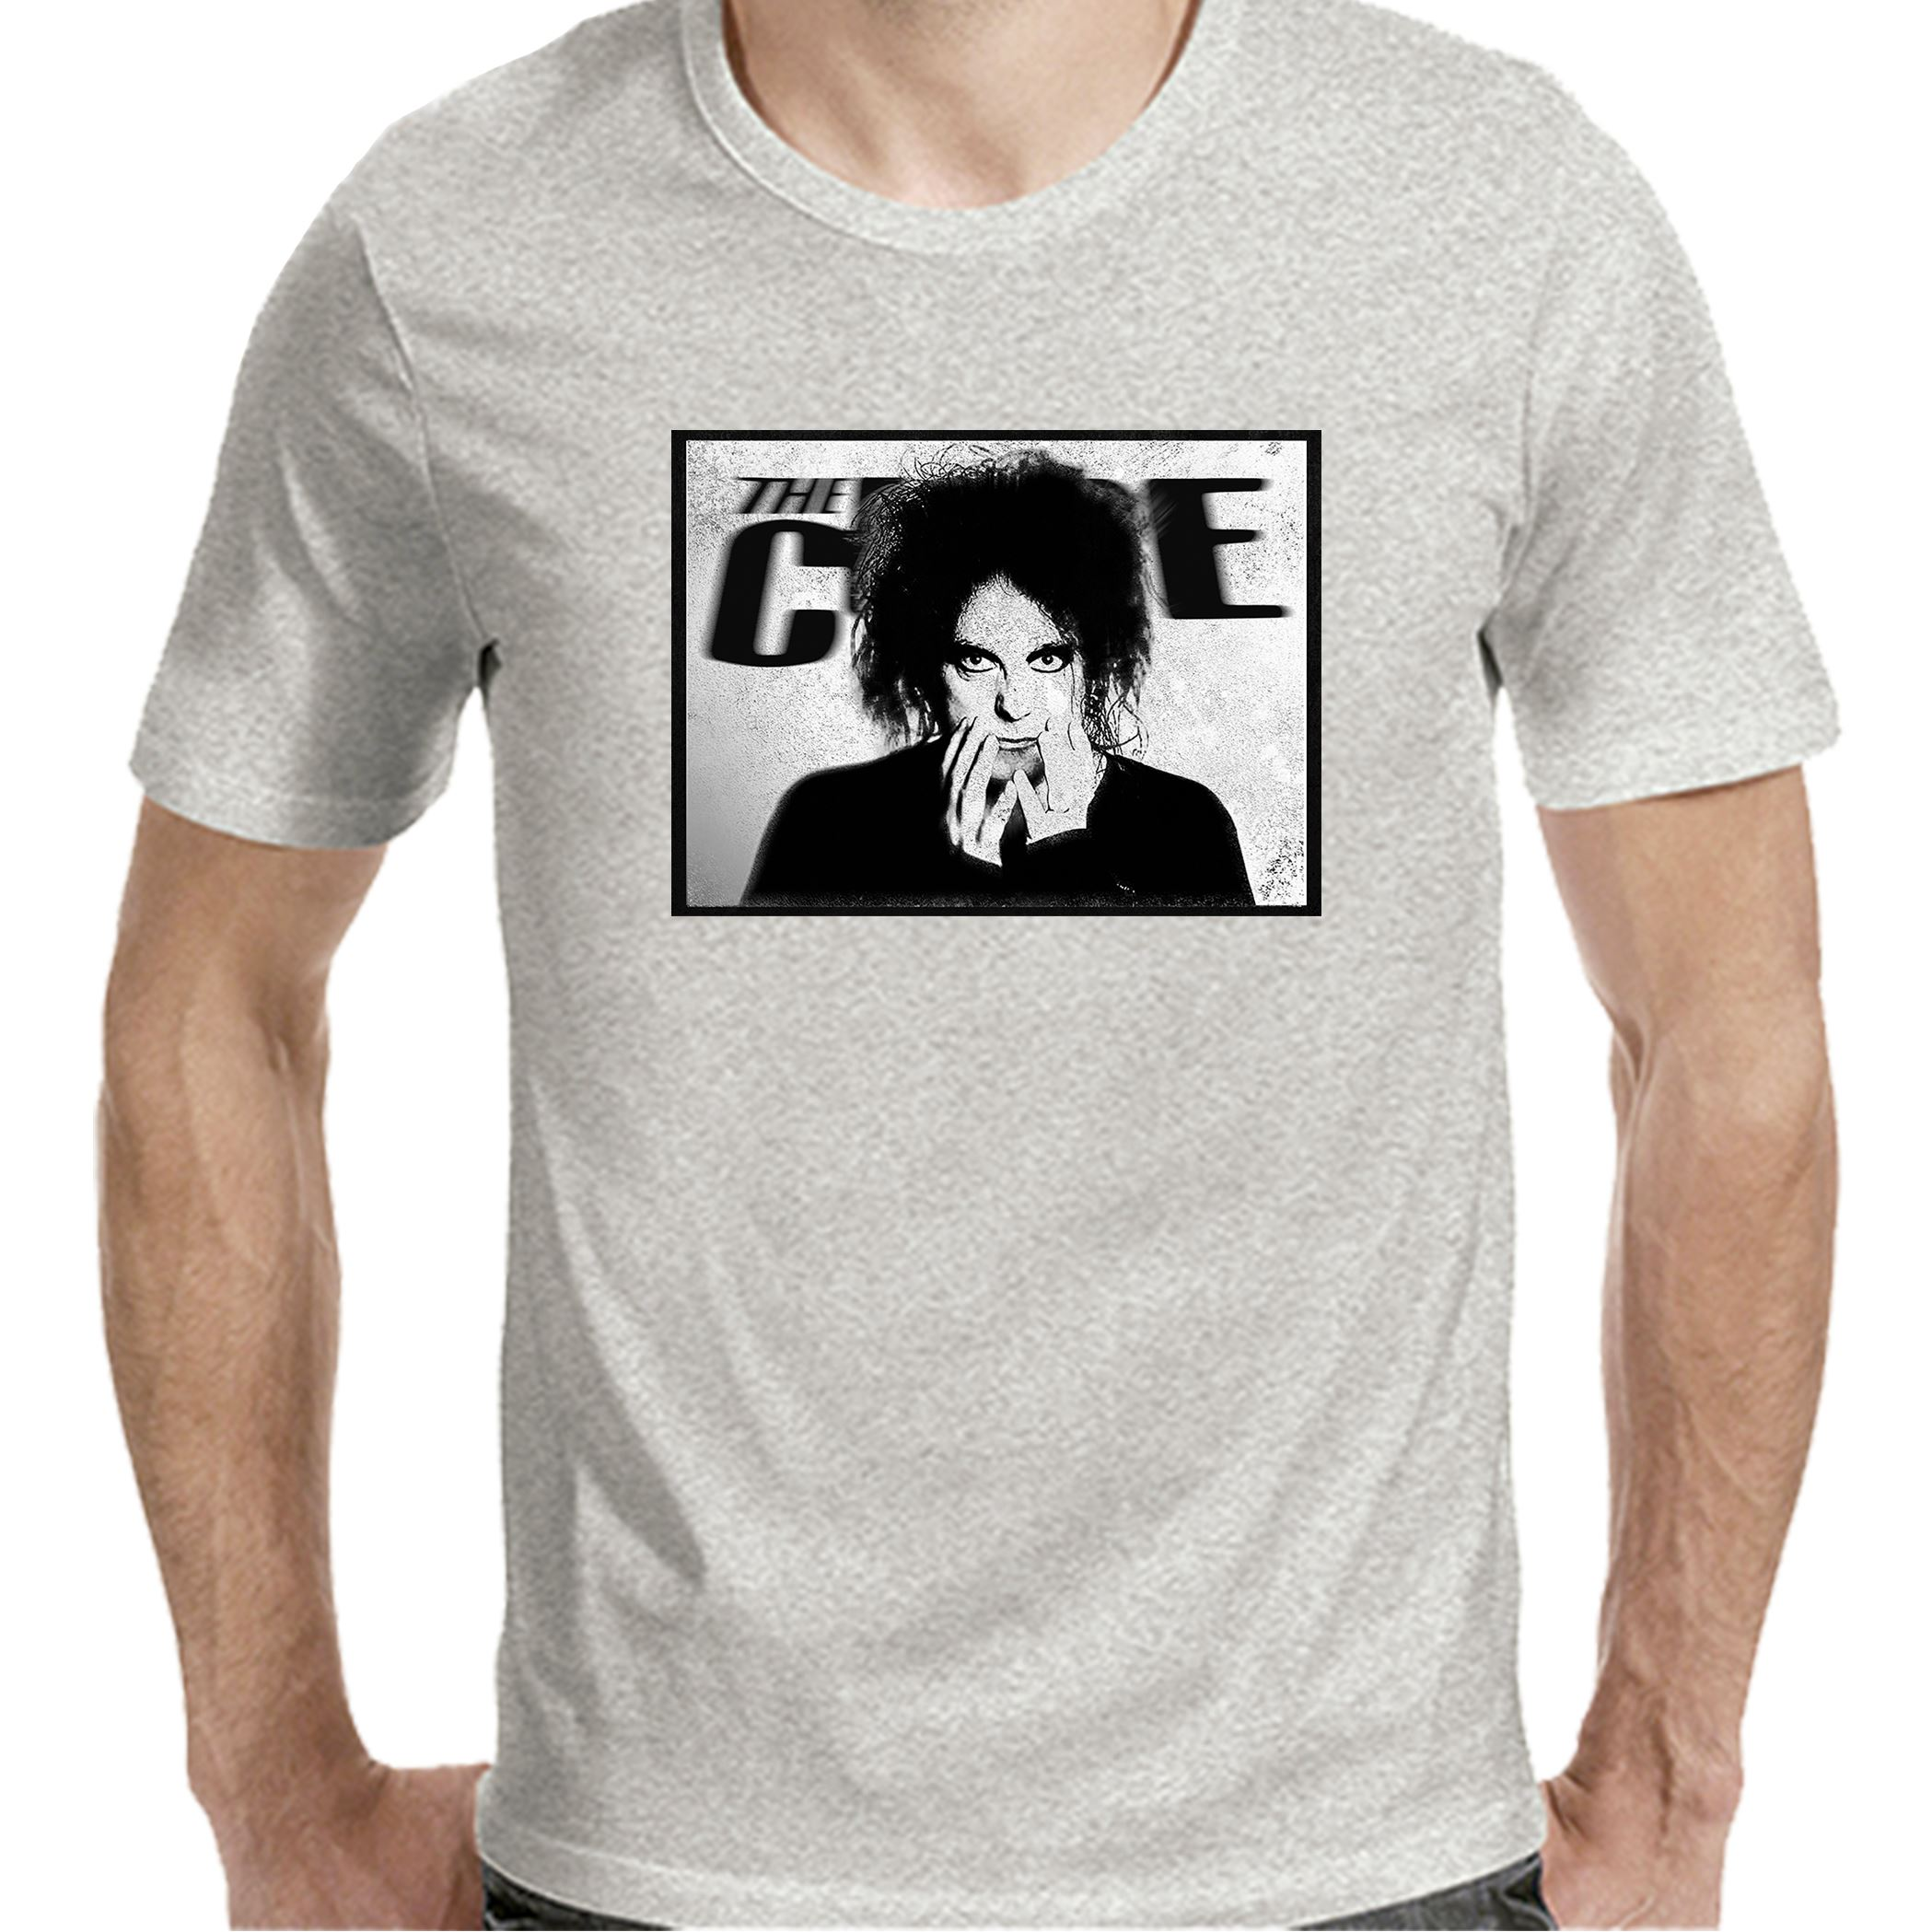 The Cure 06